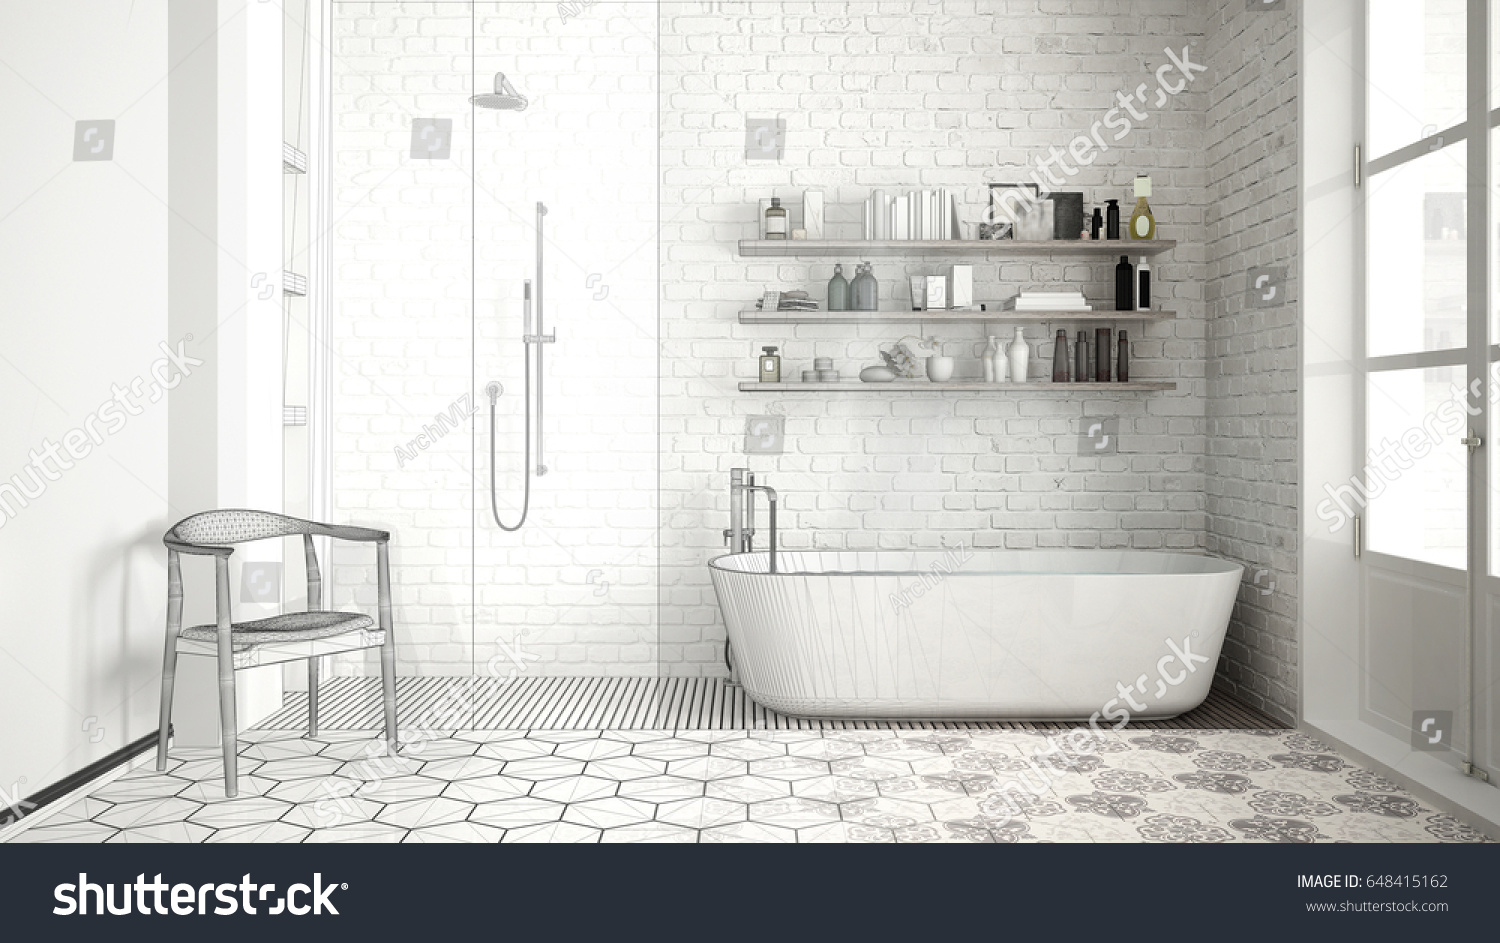 Royalty Free Stock Illustration of Unfinished Project Scandinavian ...